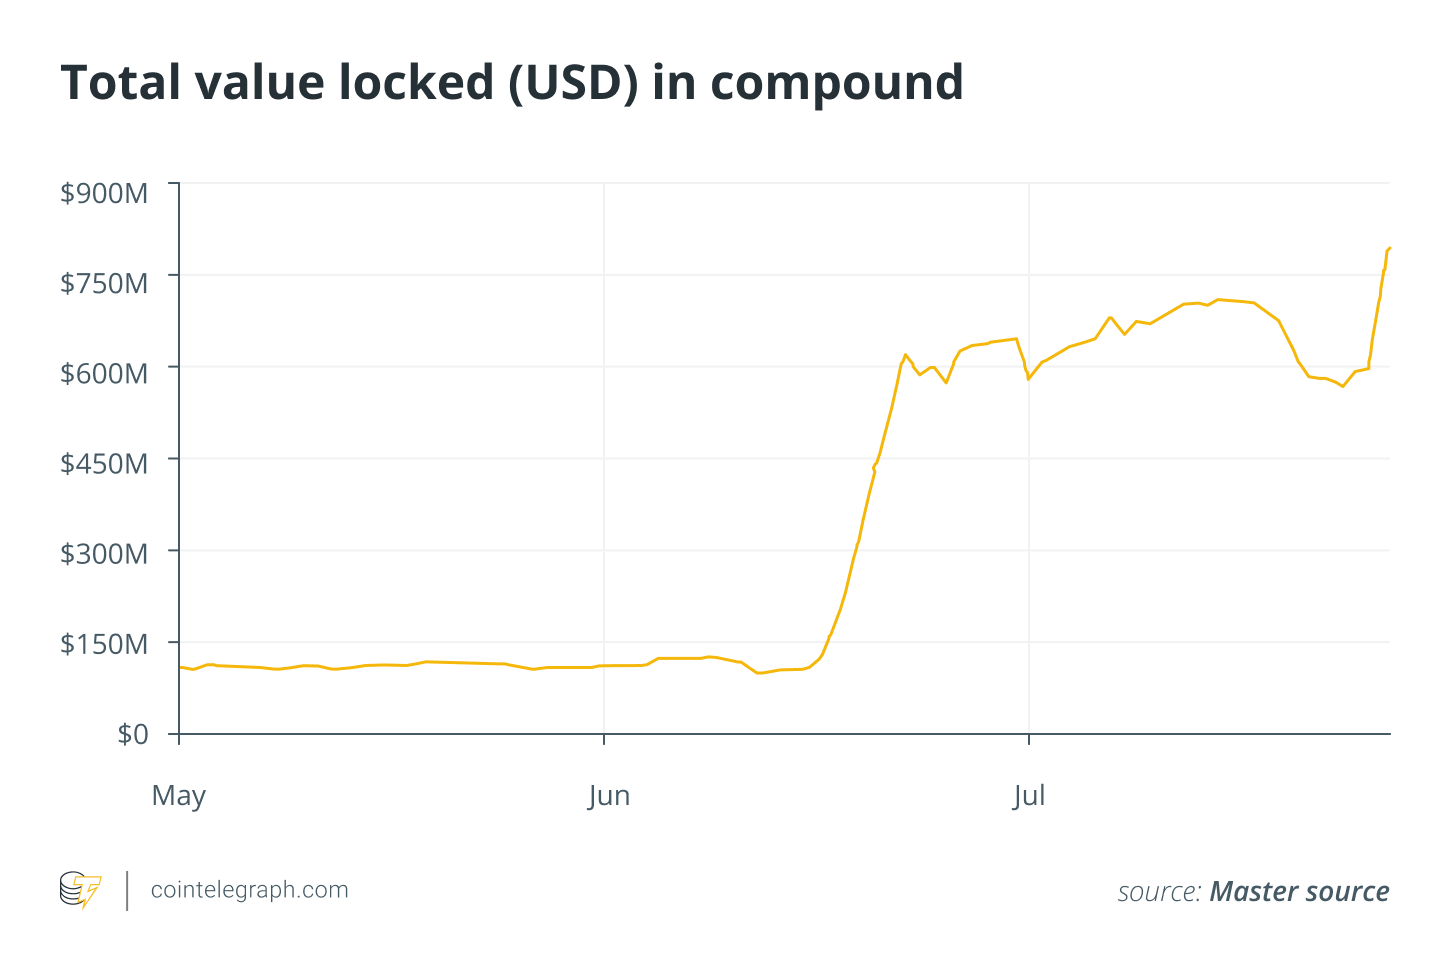 Total value locked (USD) in compound